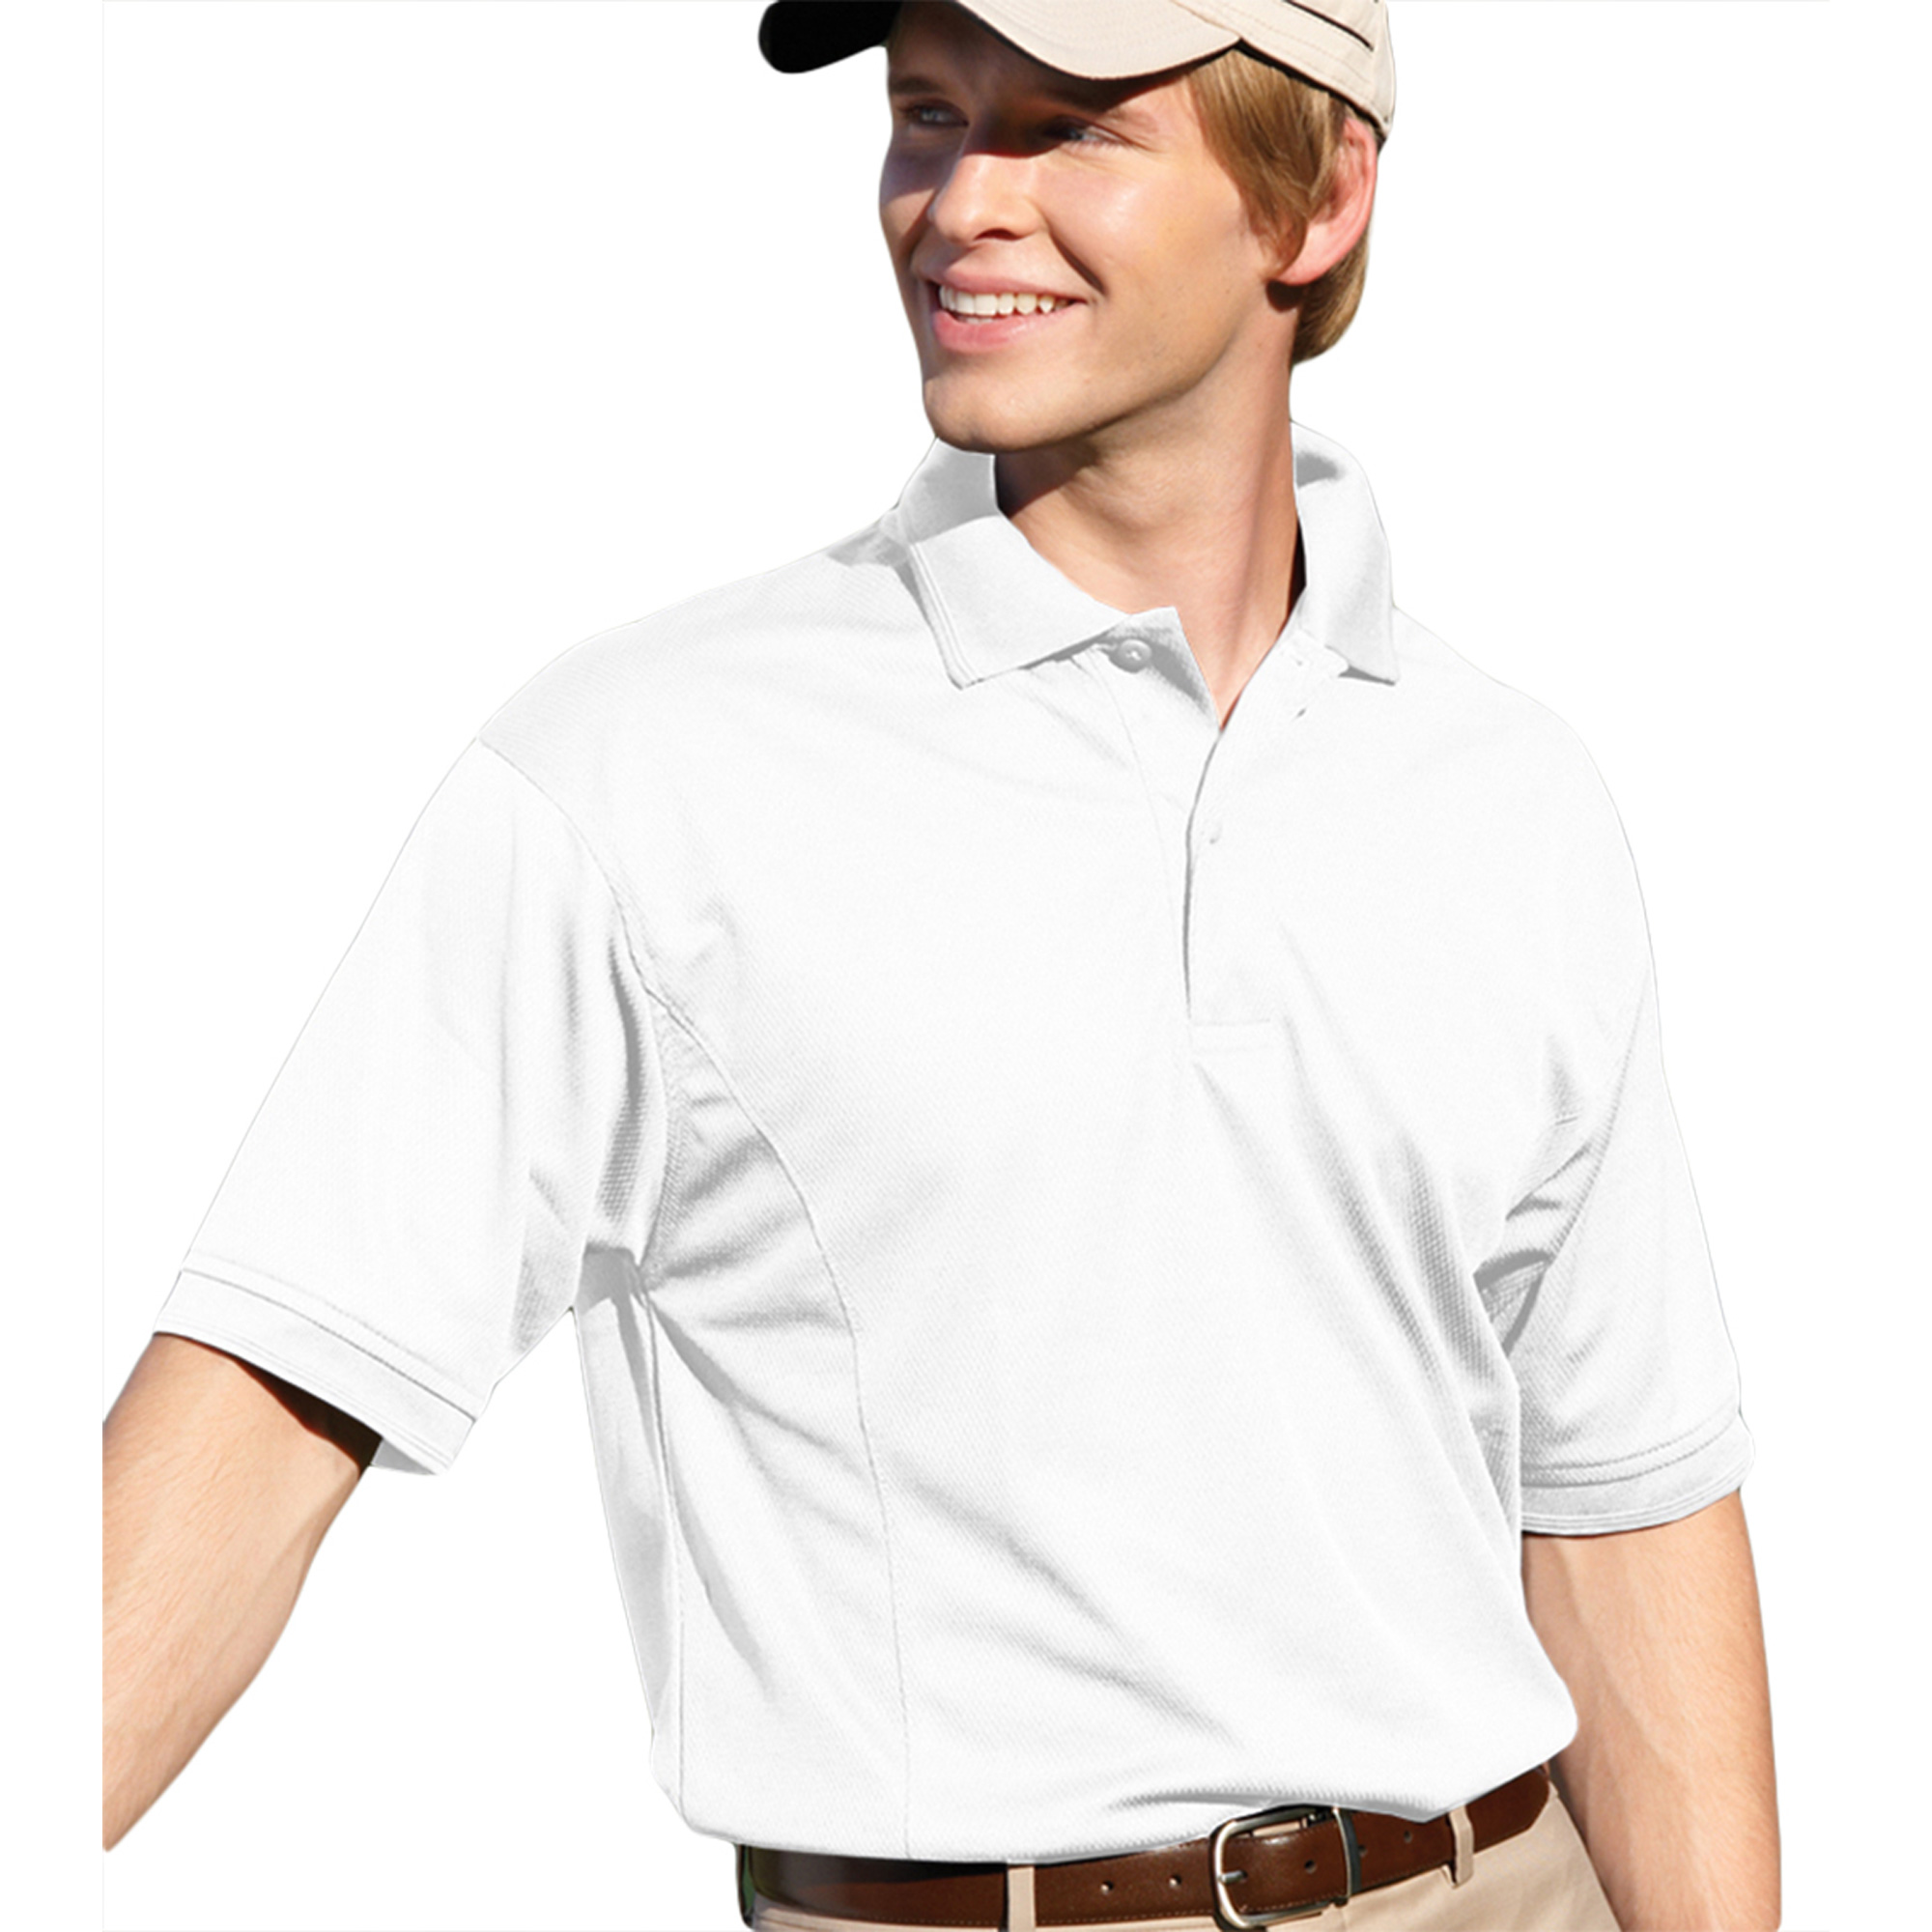 00820599180774 MENS PERFORMANCE GOLF SHIRT 2800 AQUA XL